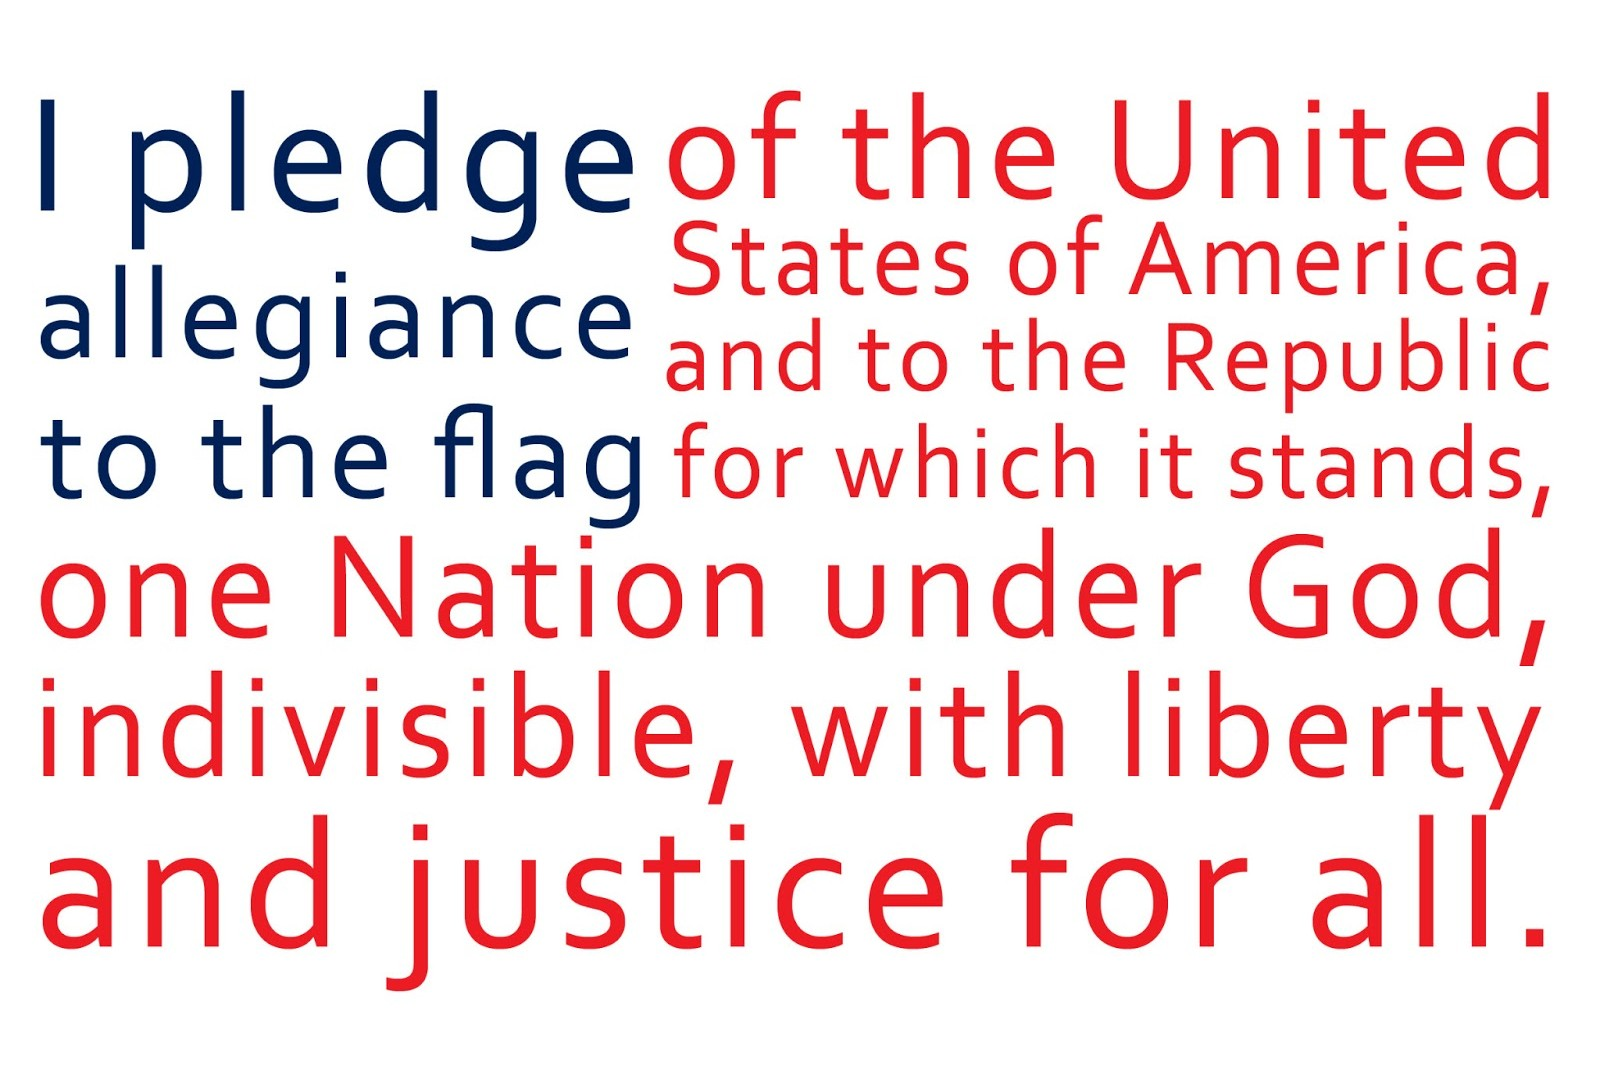 The Pledge of Allegiance! www.mytributejournal.com